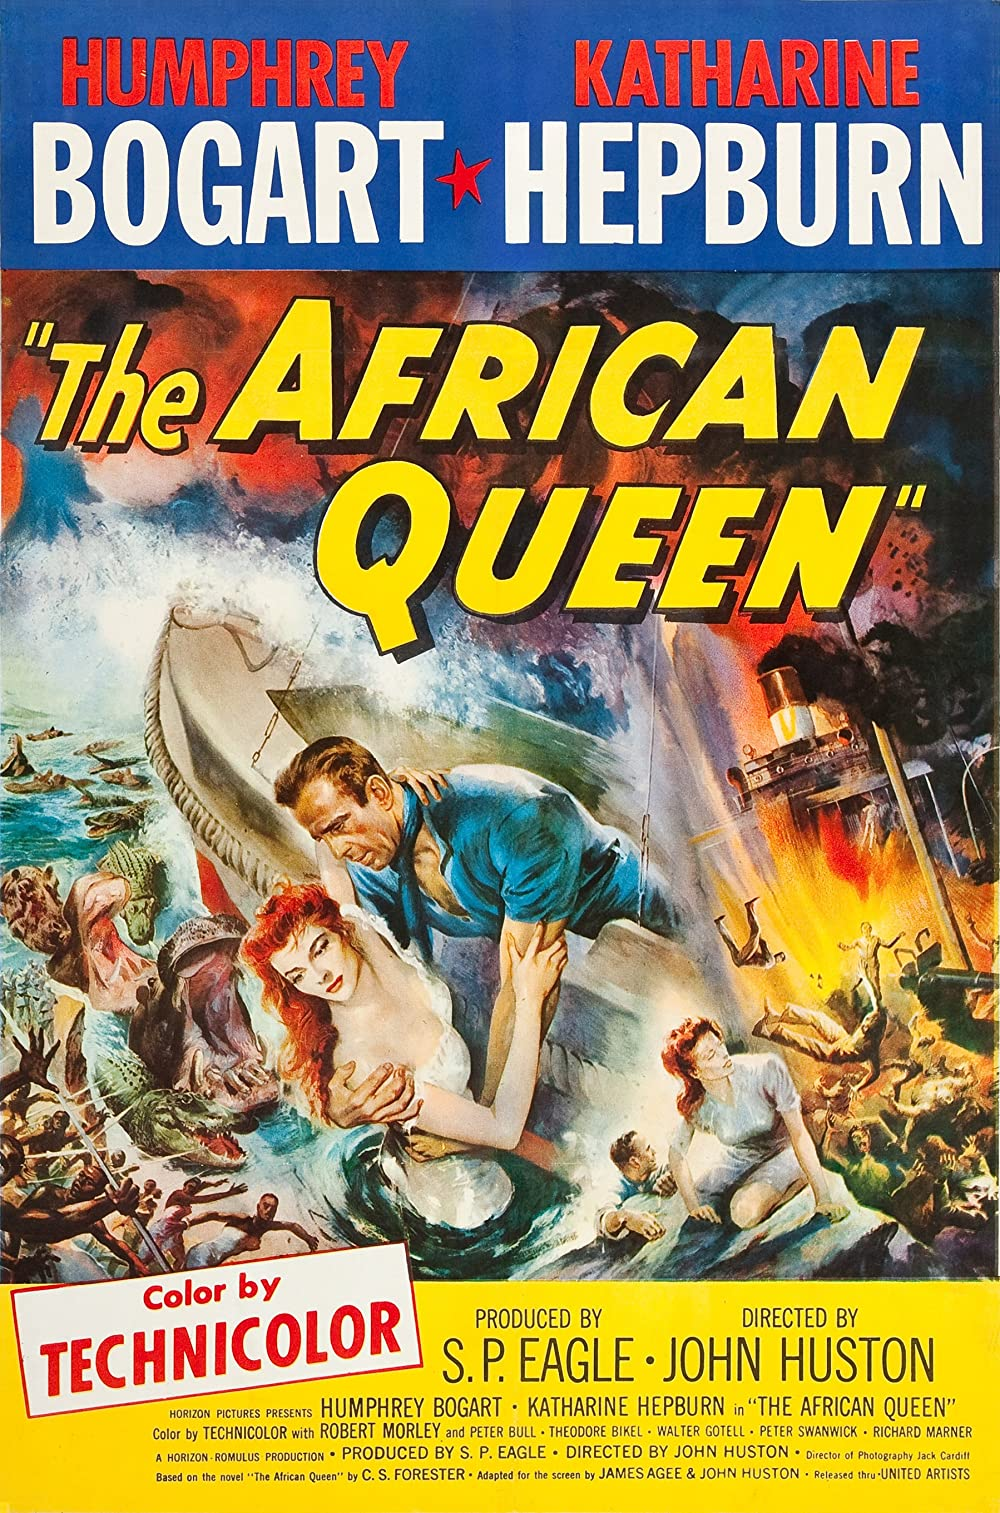 The African Queen Re-release poster